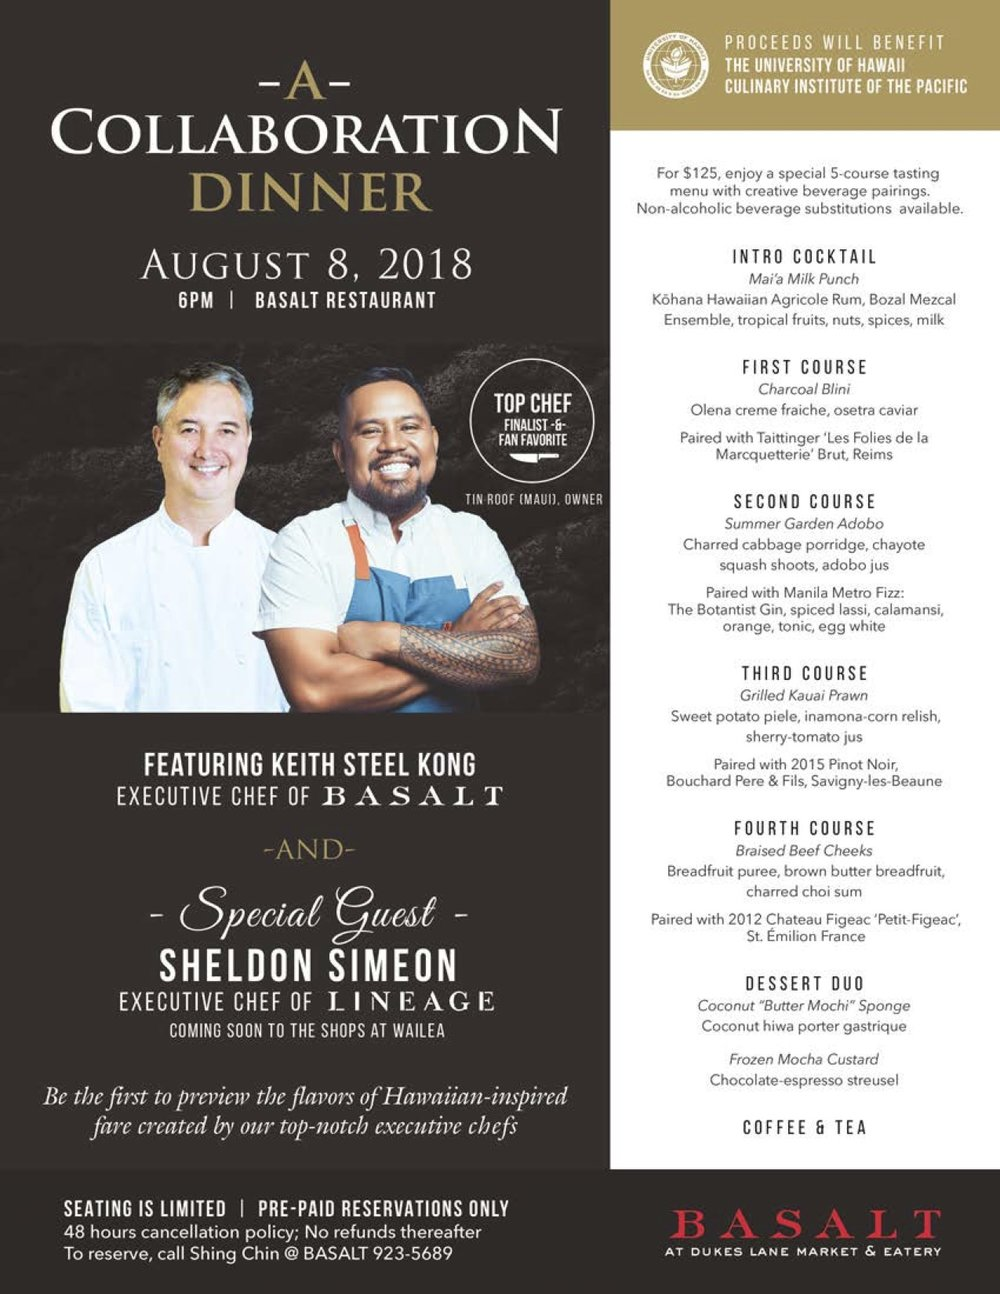 Collaboration Dinner Flyer.jpg